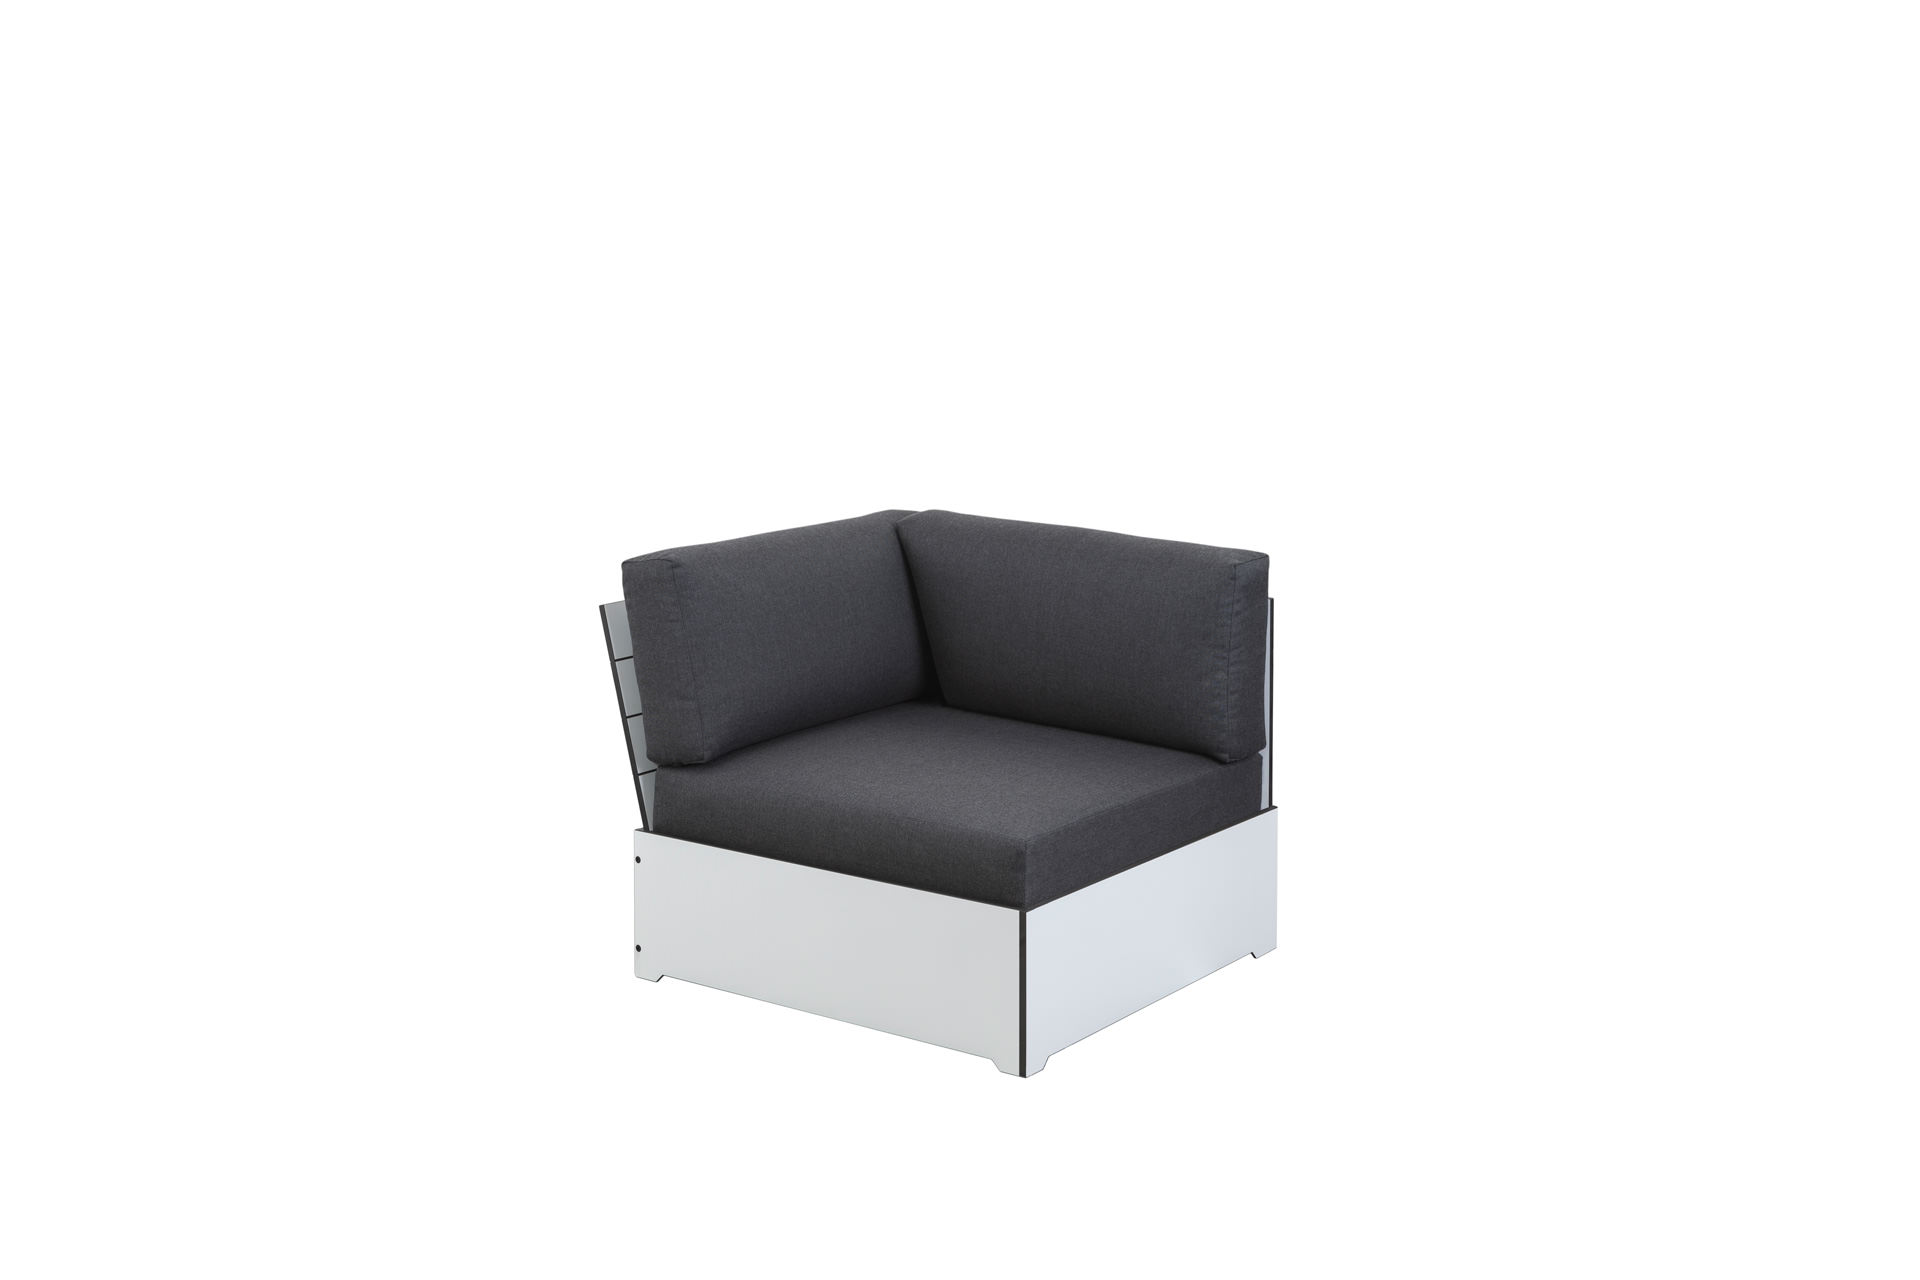 Eckmodul Lounge Daybed HPL